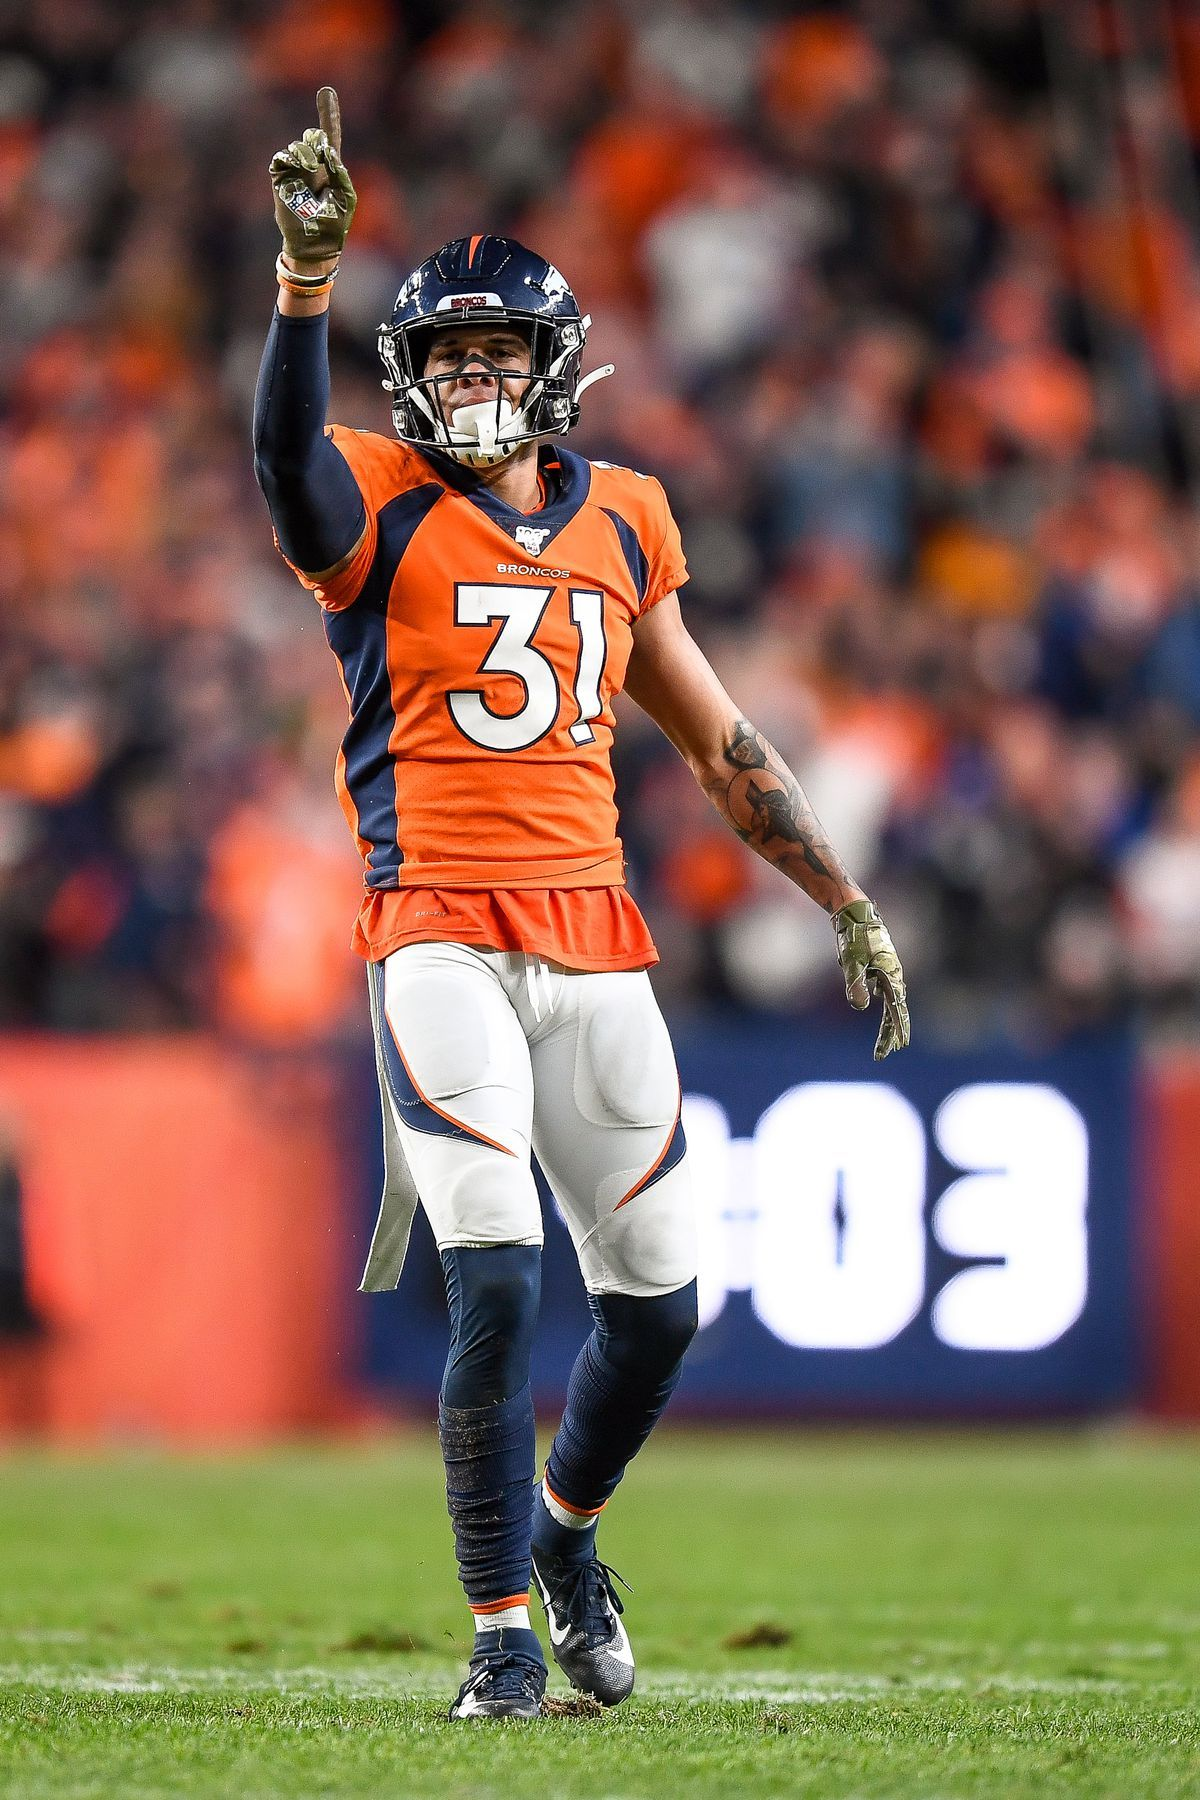 Broncos Vs Browns The No Bull Review Mile High Report is